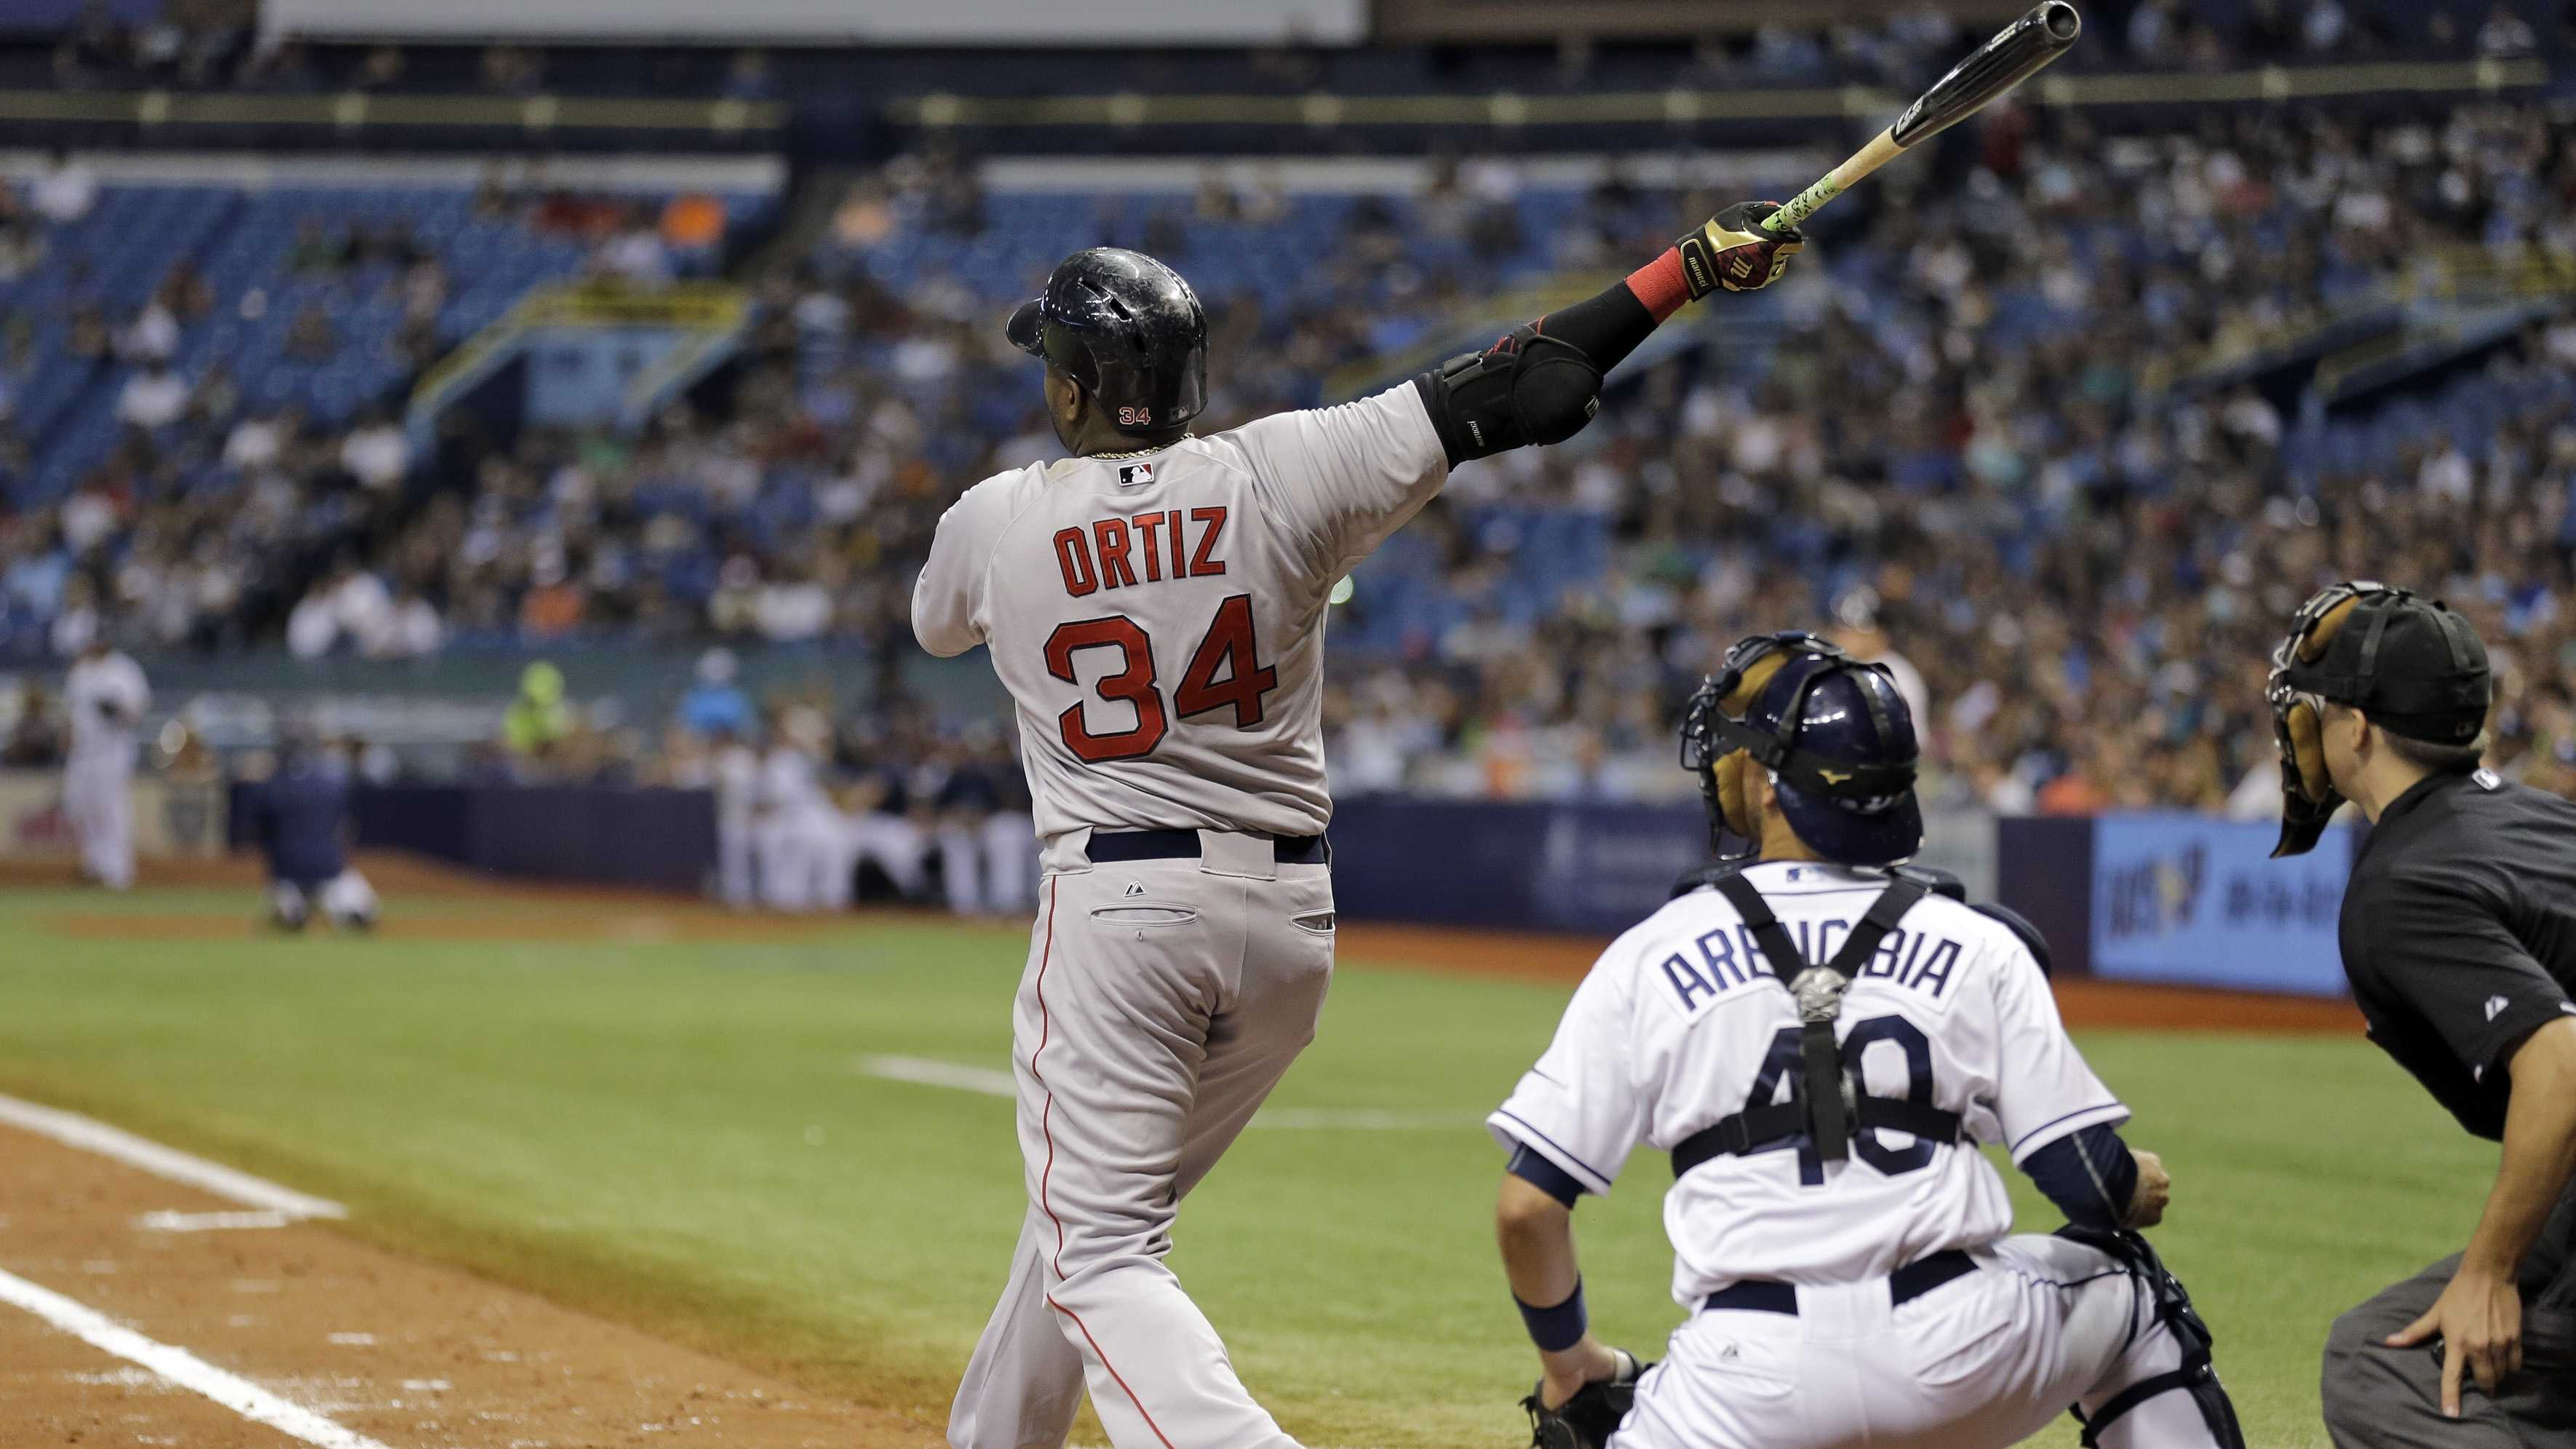 Boston Red Sox's David Ortiz watches his 500th career home run off Tampa Bay Rays starting pitcher Matt Moore during the fifth inning of a baseball game Saturday, Sept. 12, 2015, in St. Petersburg, Fla. watching is Rays catcher J.P. Arencibia, and home plate umpire Adam Hamari.